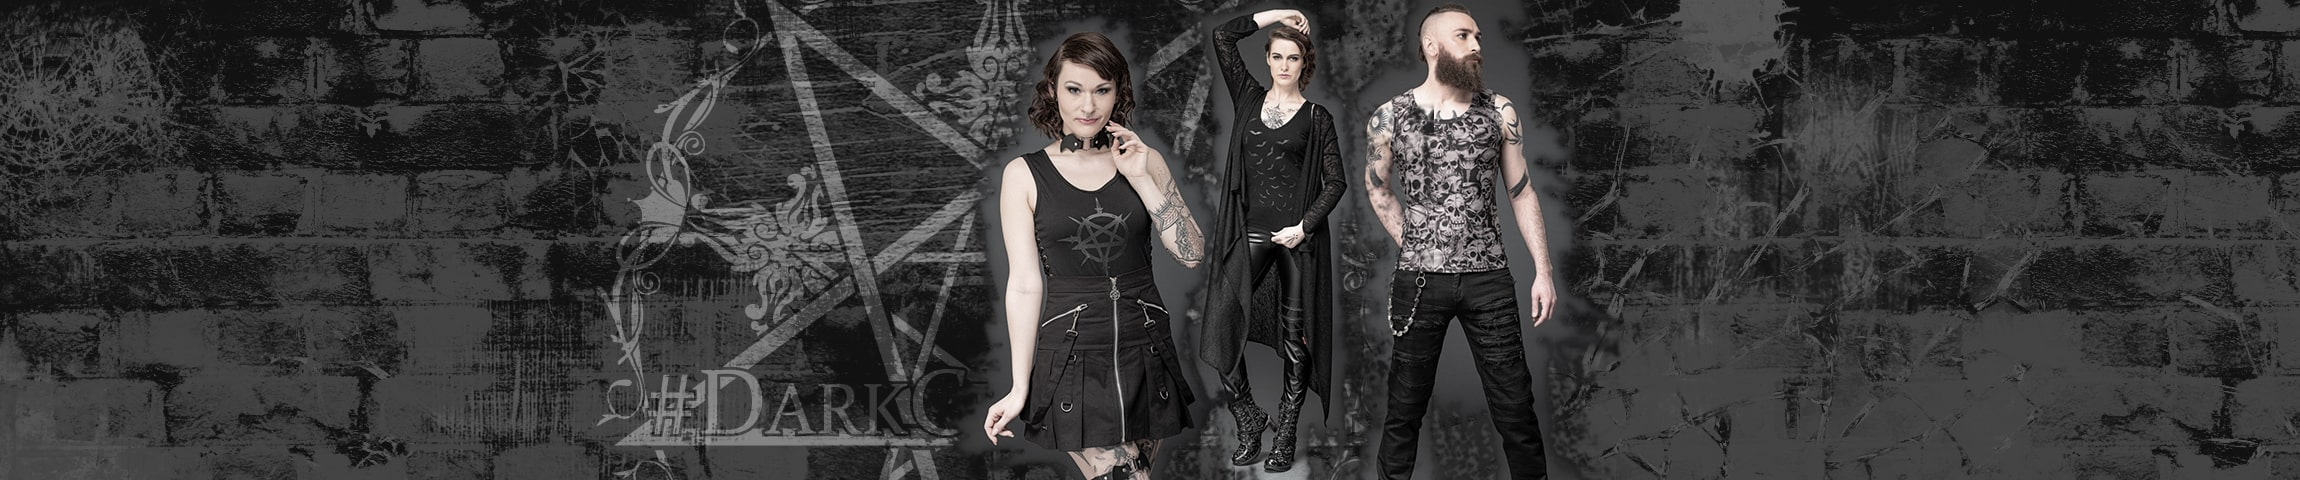 Neue Kollektion von Queen of Darkness